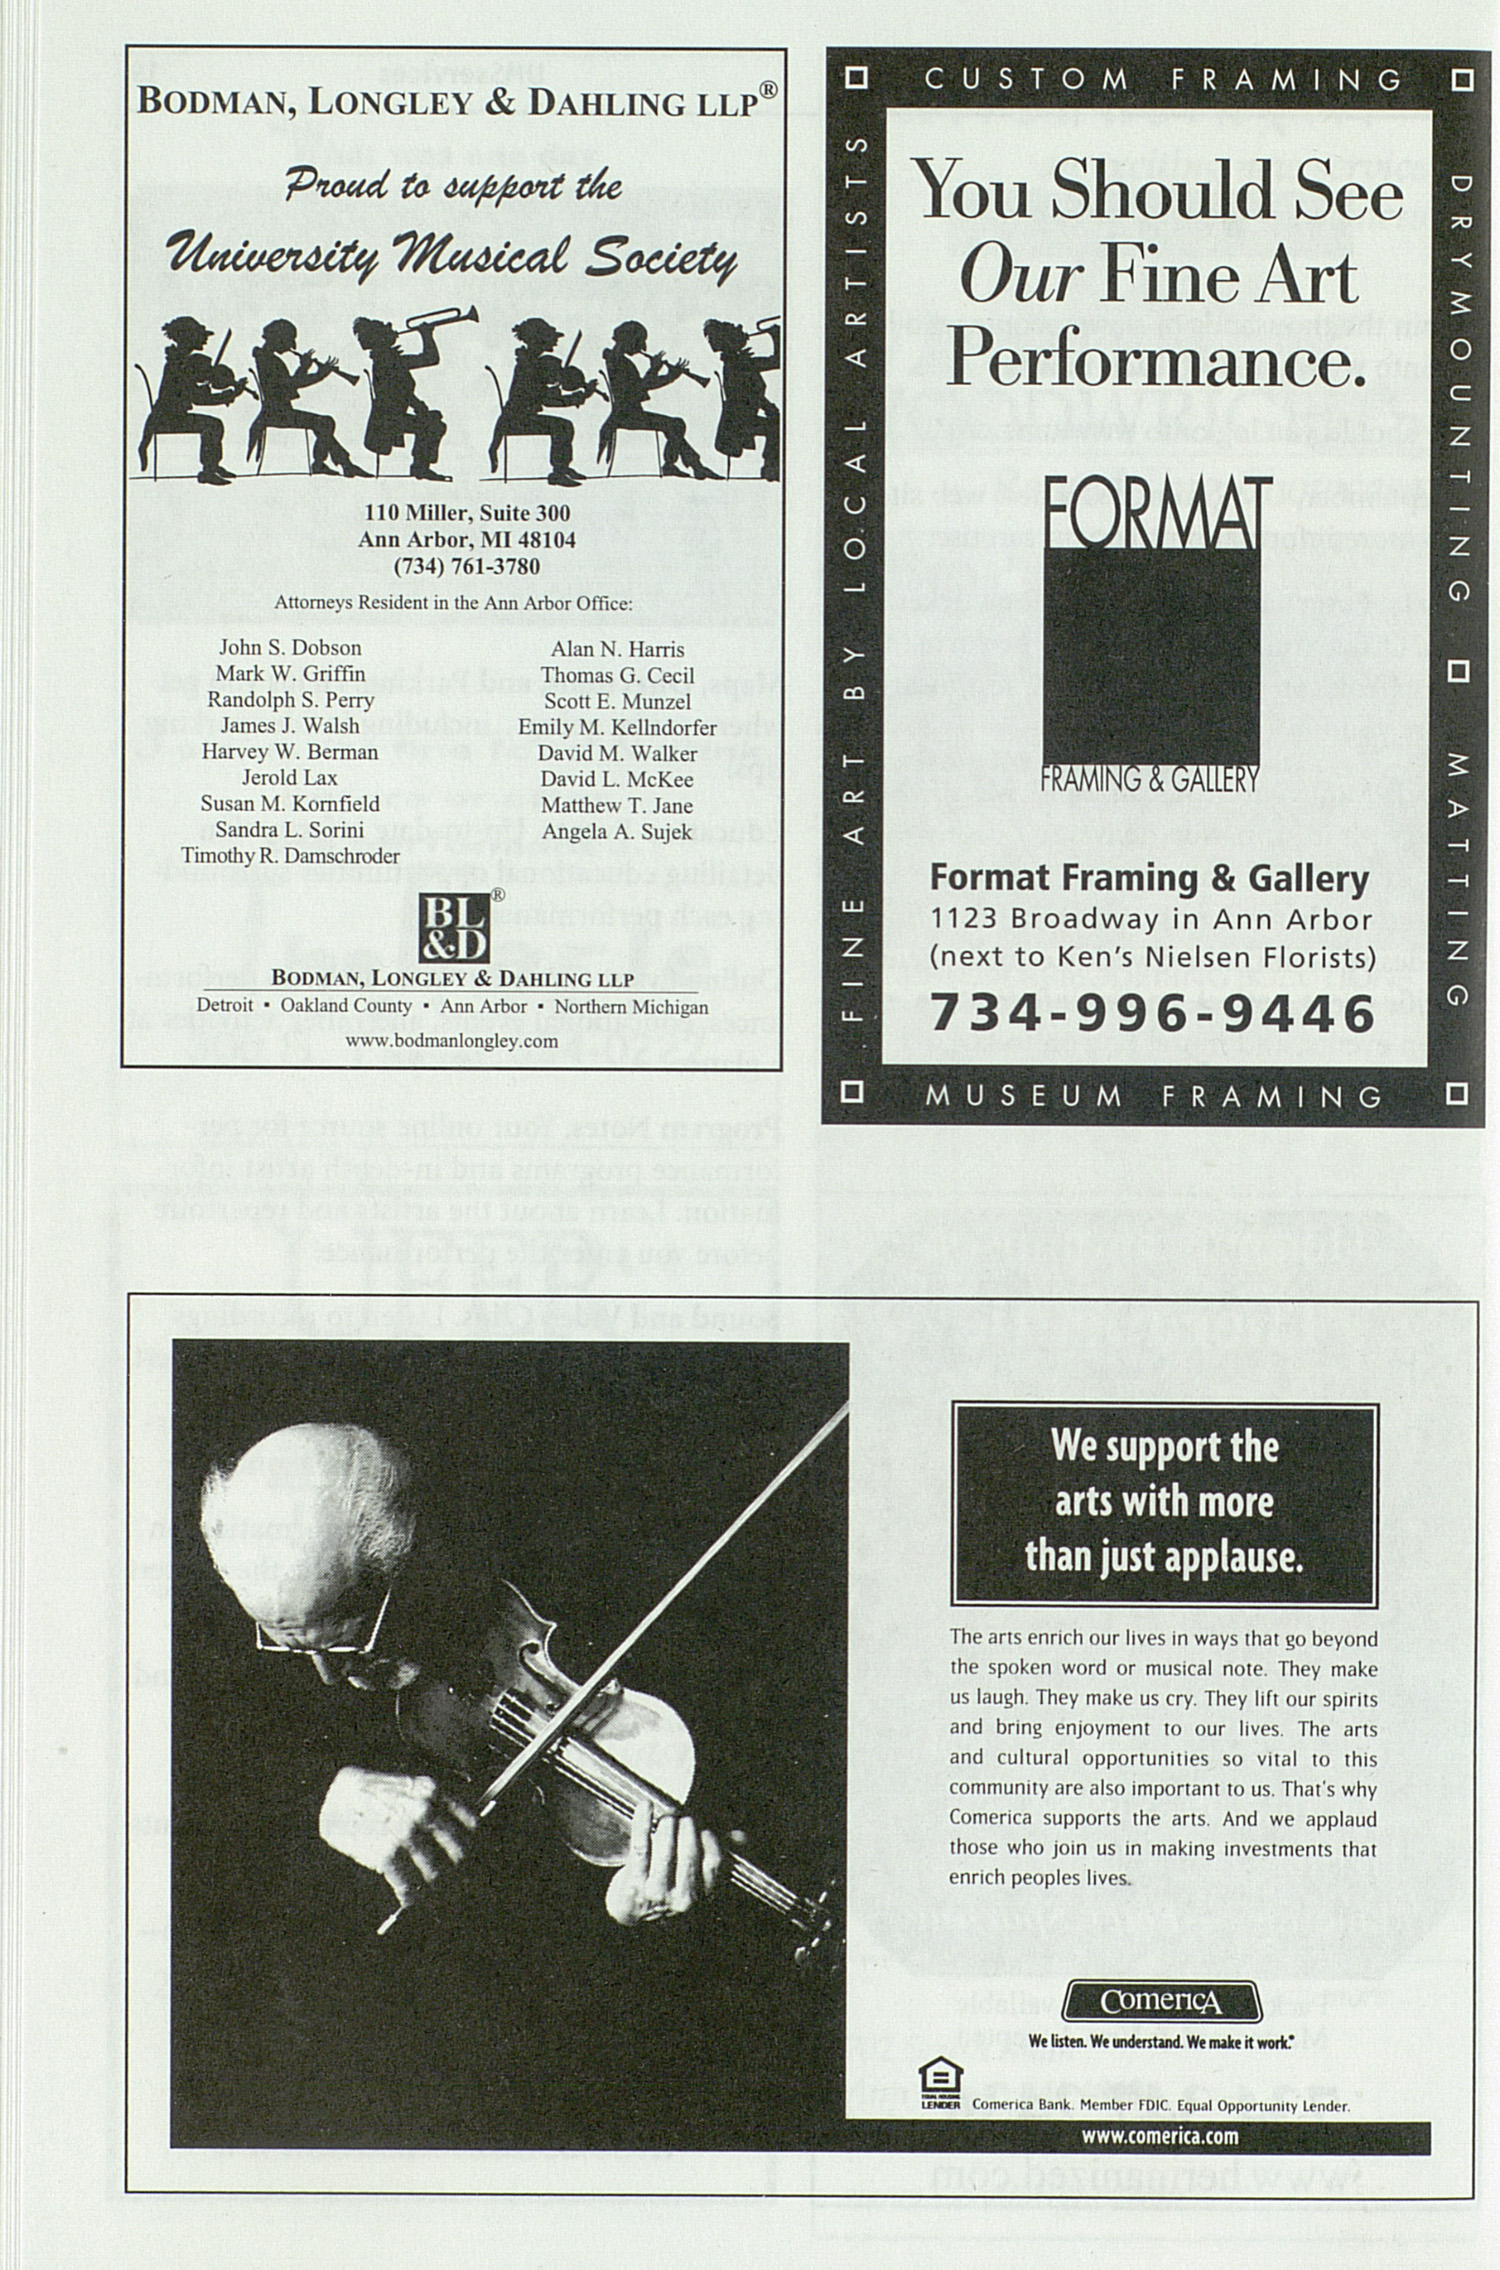 UMS Concert Program, Friday Dec. 05 To 07: University Musical Society: Fall 2003 - Friday Dec. 05 To 07 --  image